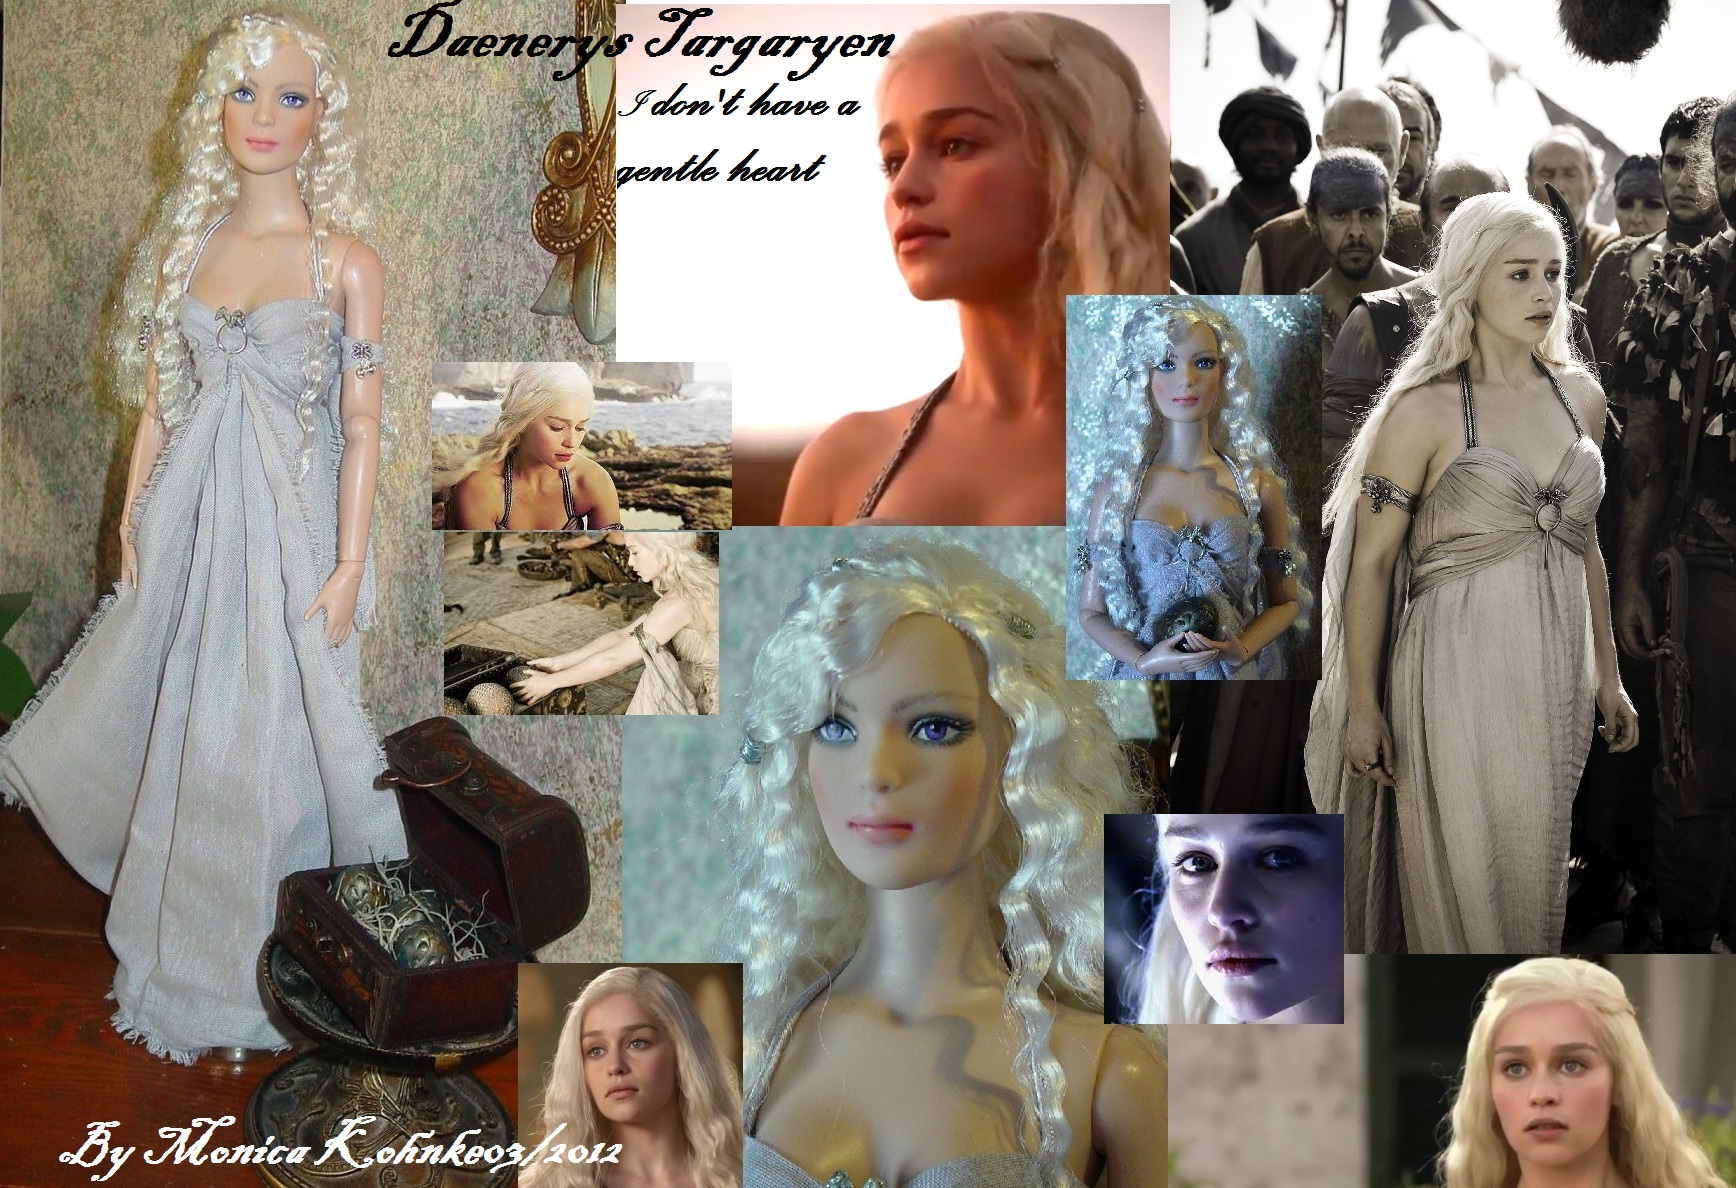 Daenarys wedding